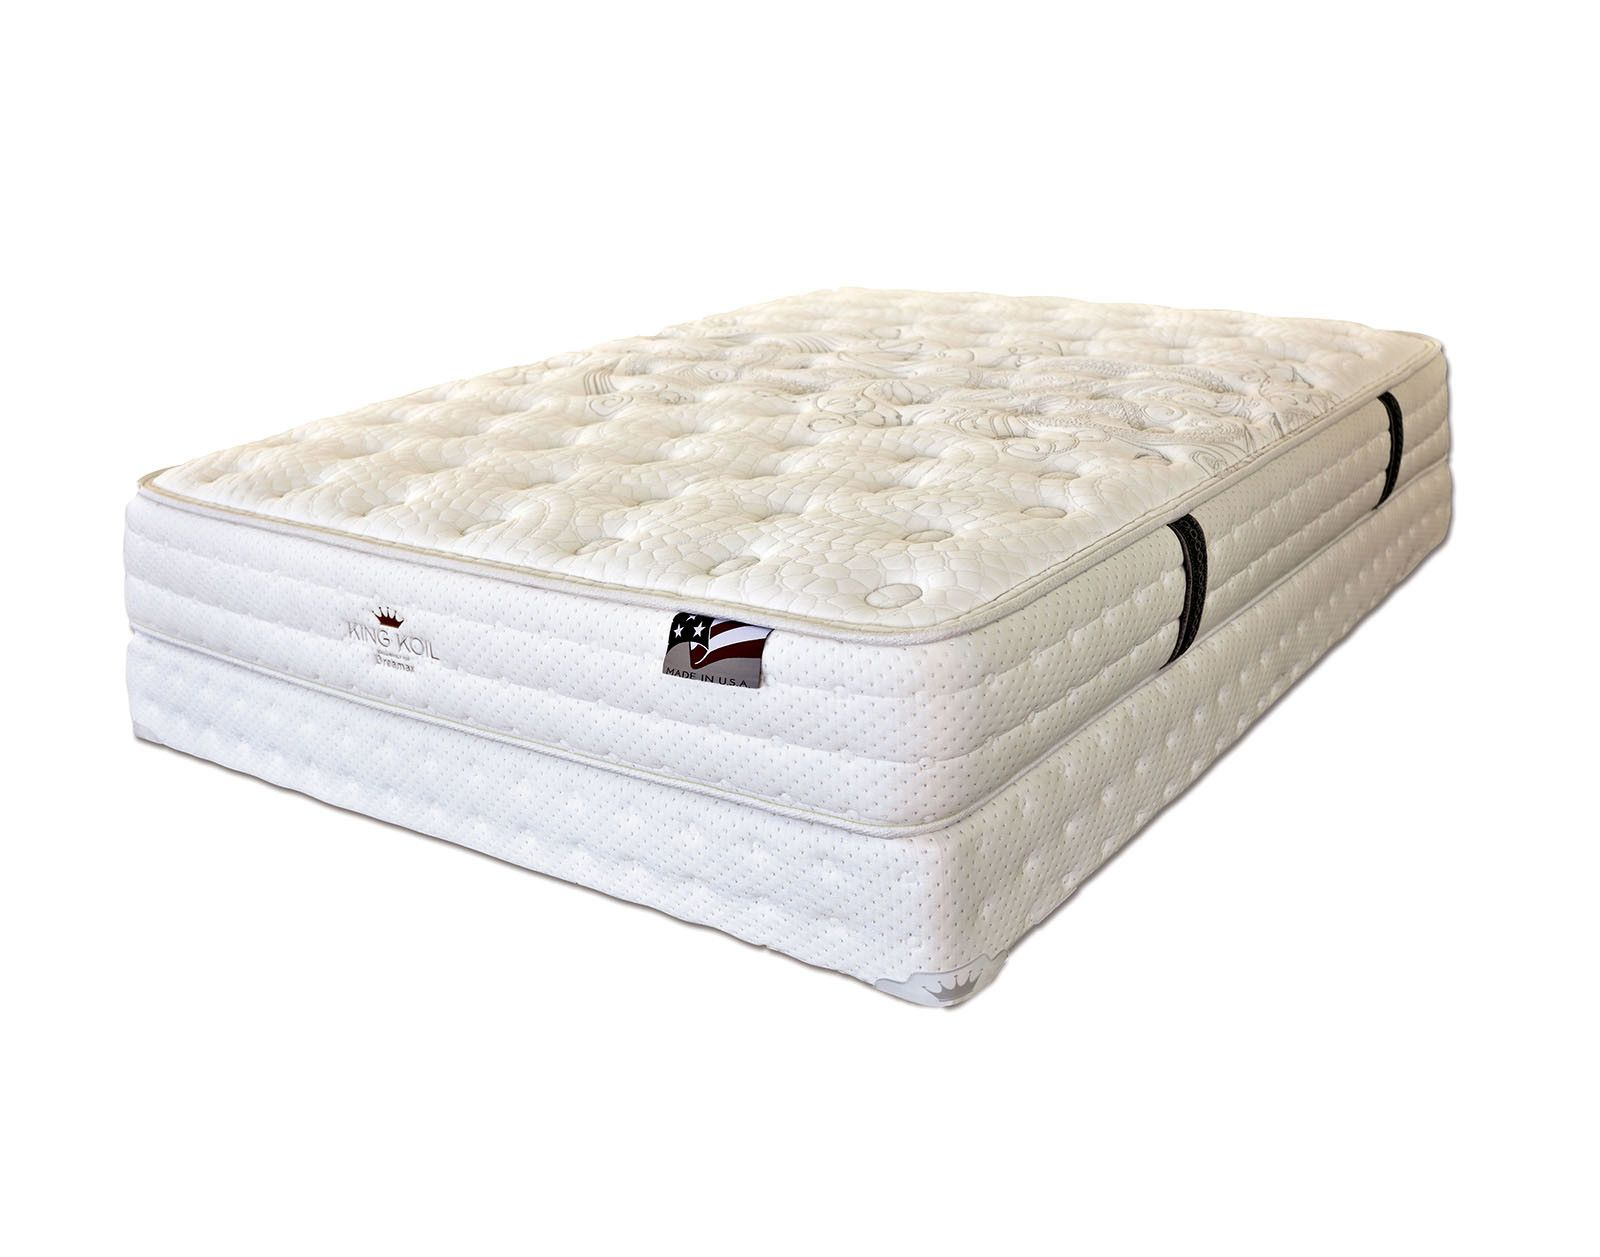 alyssum iii tight top full size mattress dm157f memories of and